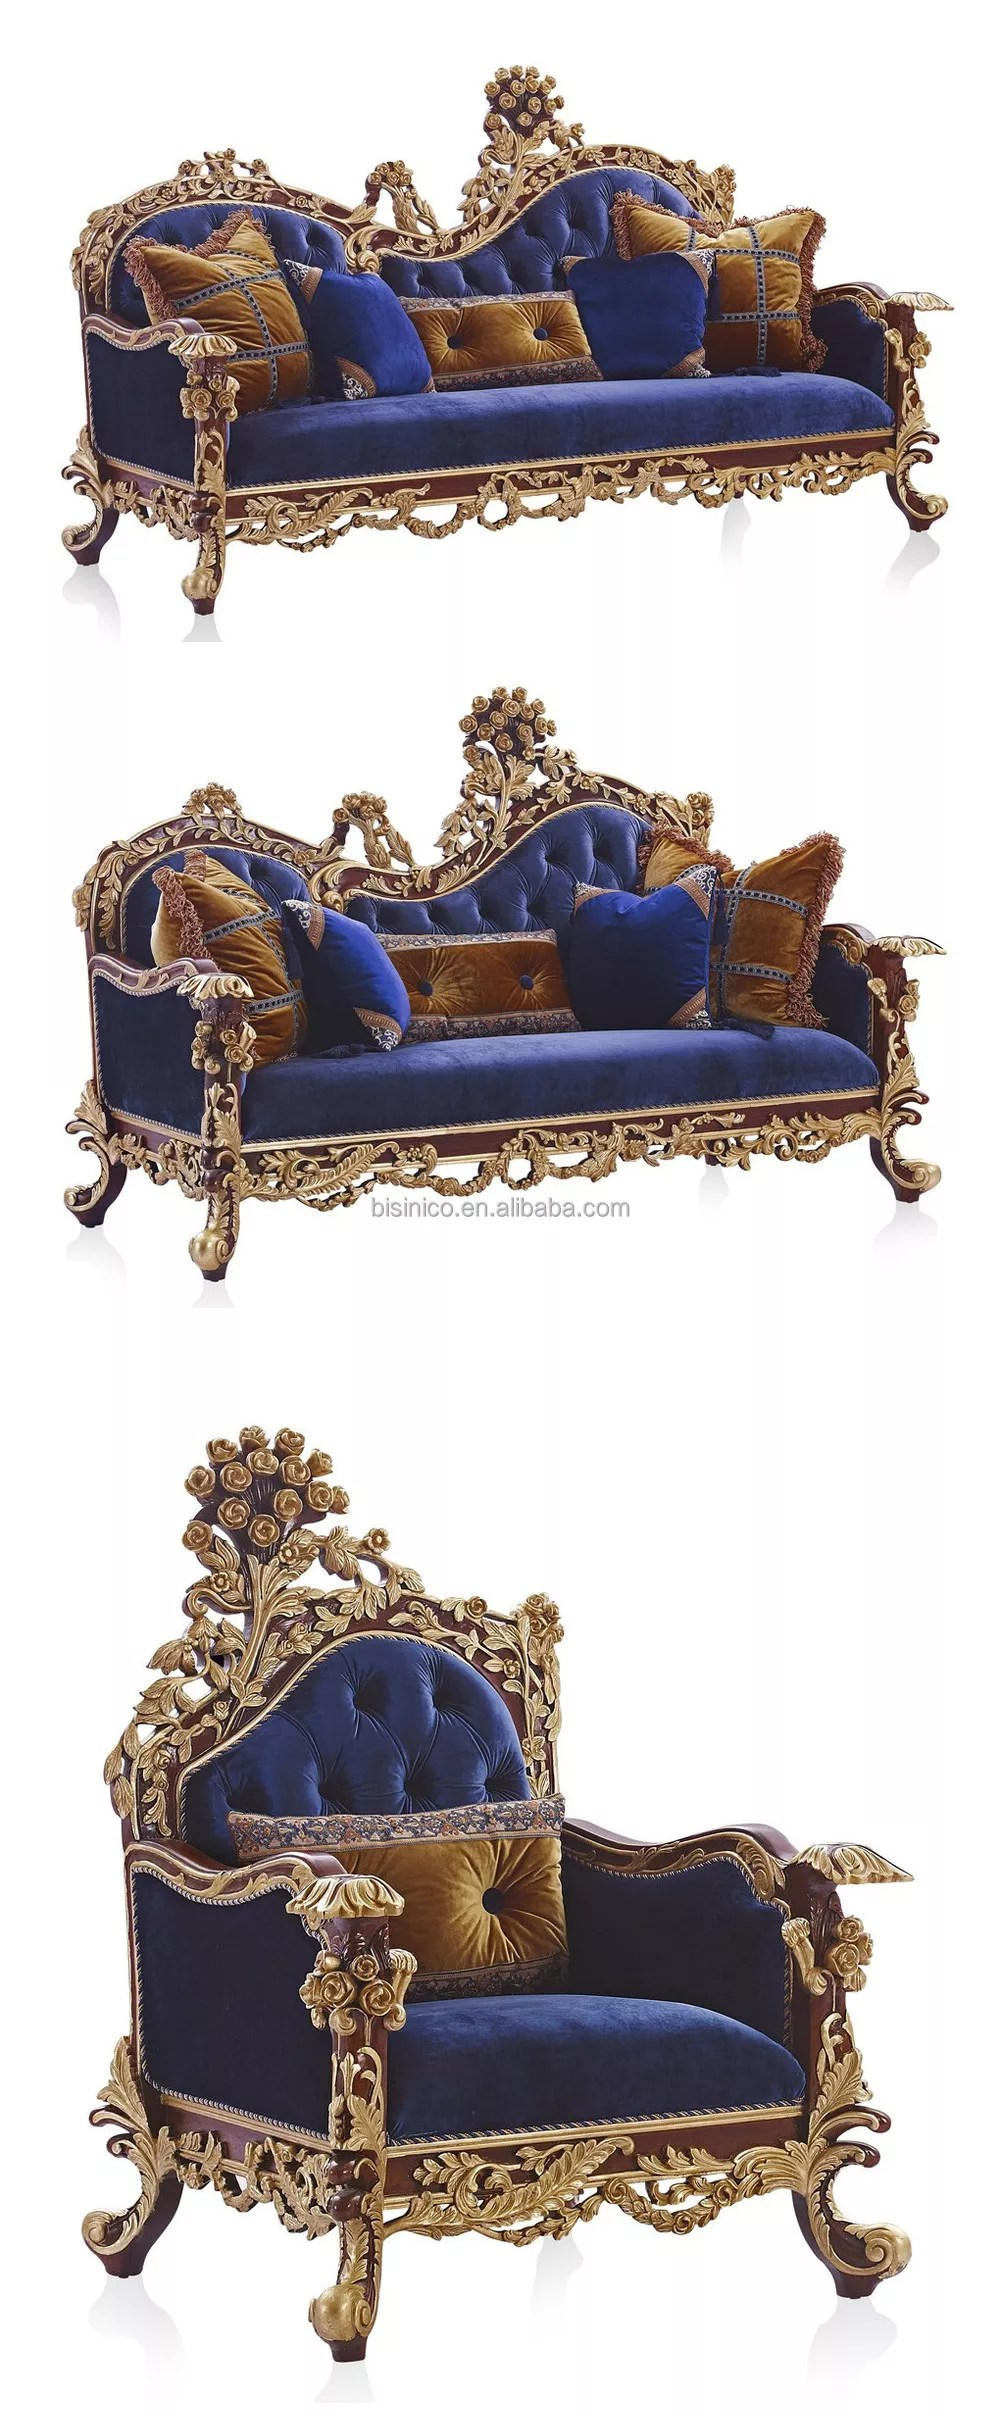 Baroque Style Living Room Sofa Set Retro Wood Carving Living Room Furniture Whole Set Gold Leaf Palace Furniture Buy Living Room Wooden Sofa